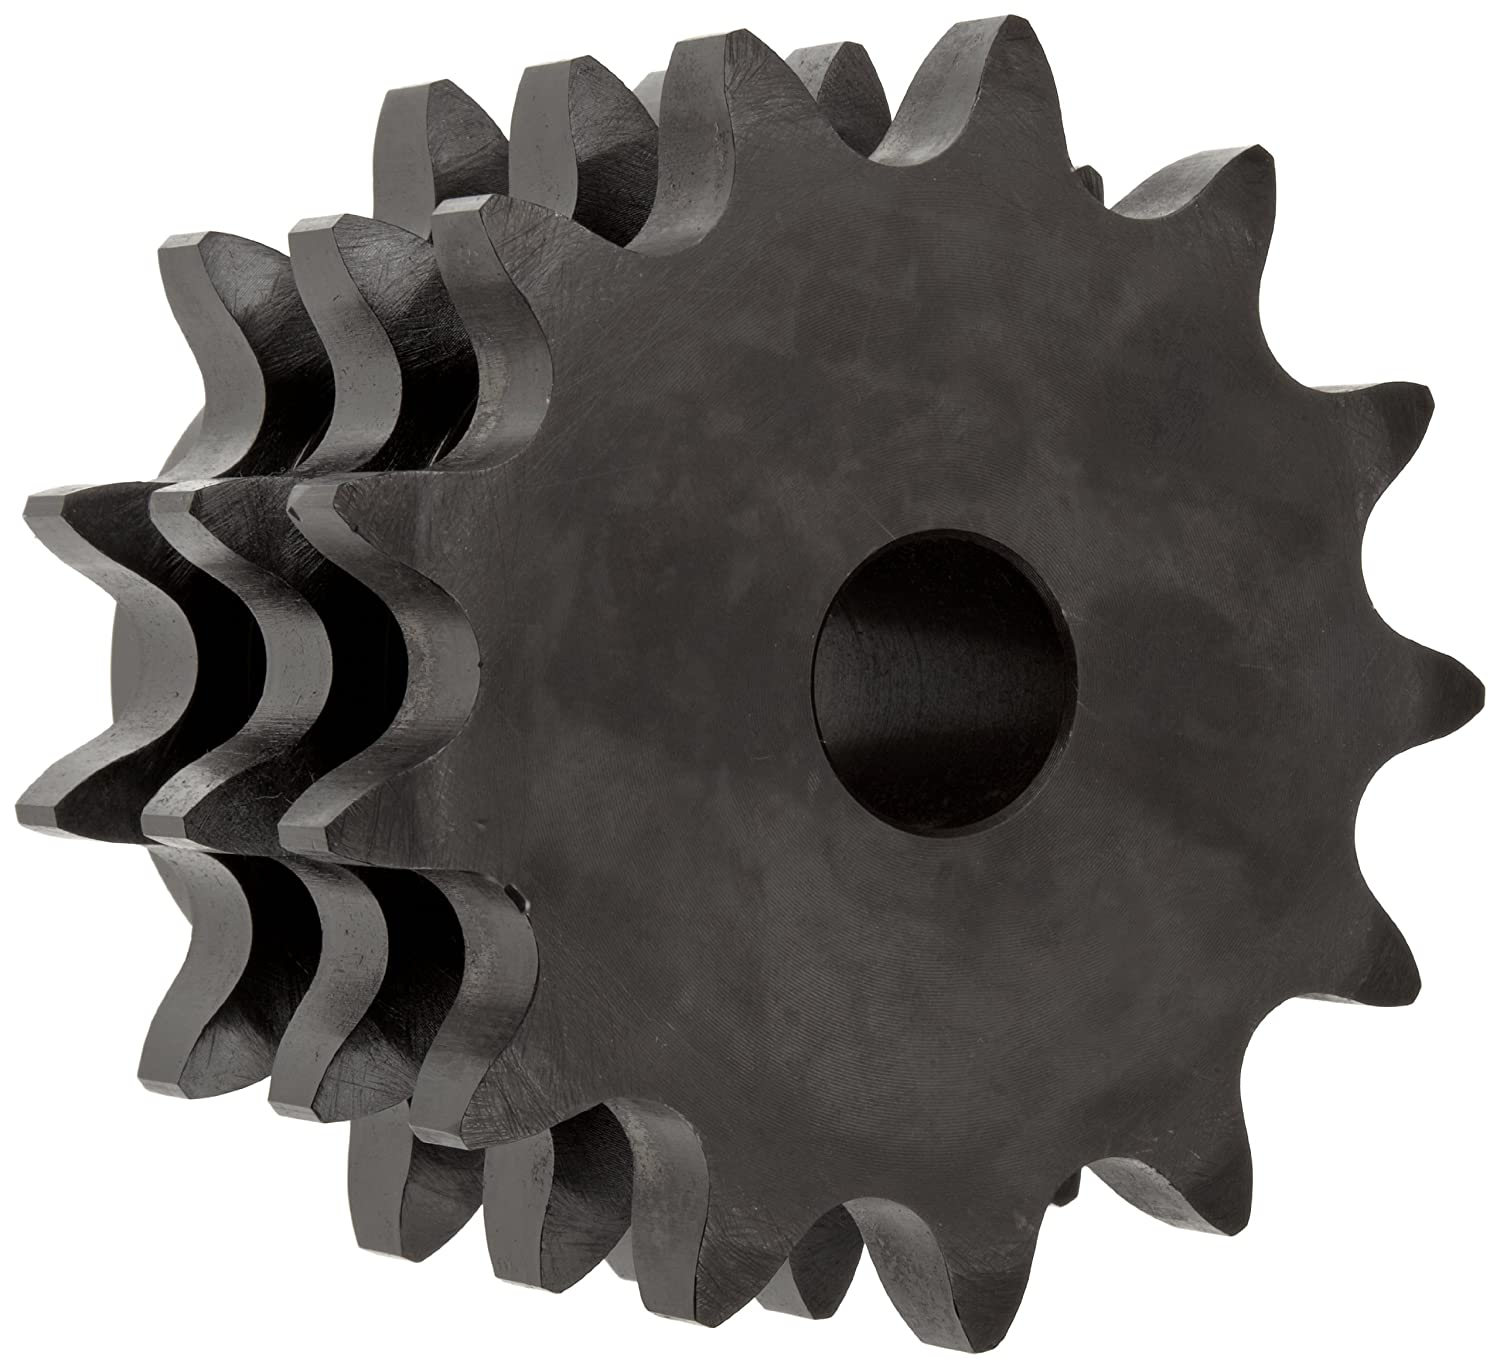 Reboreable 0.459 Width Double Pitch Strand Martin Roller Chain Sprocket 13 Teeth Type A Hub 1.5 Pitch 6.99 OD 2062//C2062 Chain Size 0.719 Bore Dia.